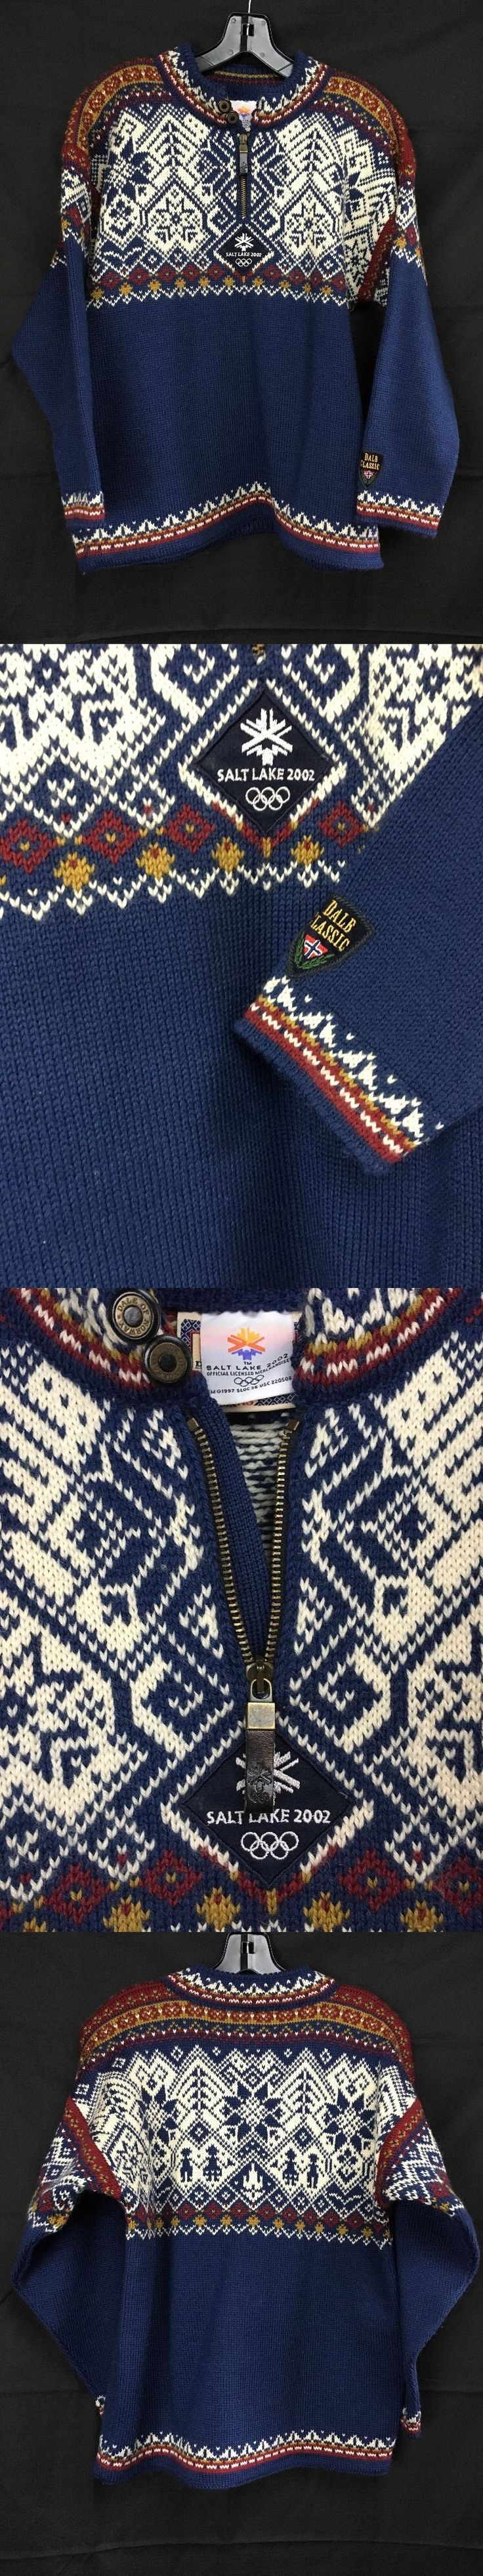 Sweaters 59522: Dale Of Norway Slc Utah 2002 Winter Olympics Collectible Norwegian Sweater - Xs BUY IT NOW ONLY: $69.0